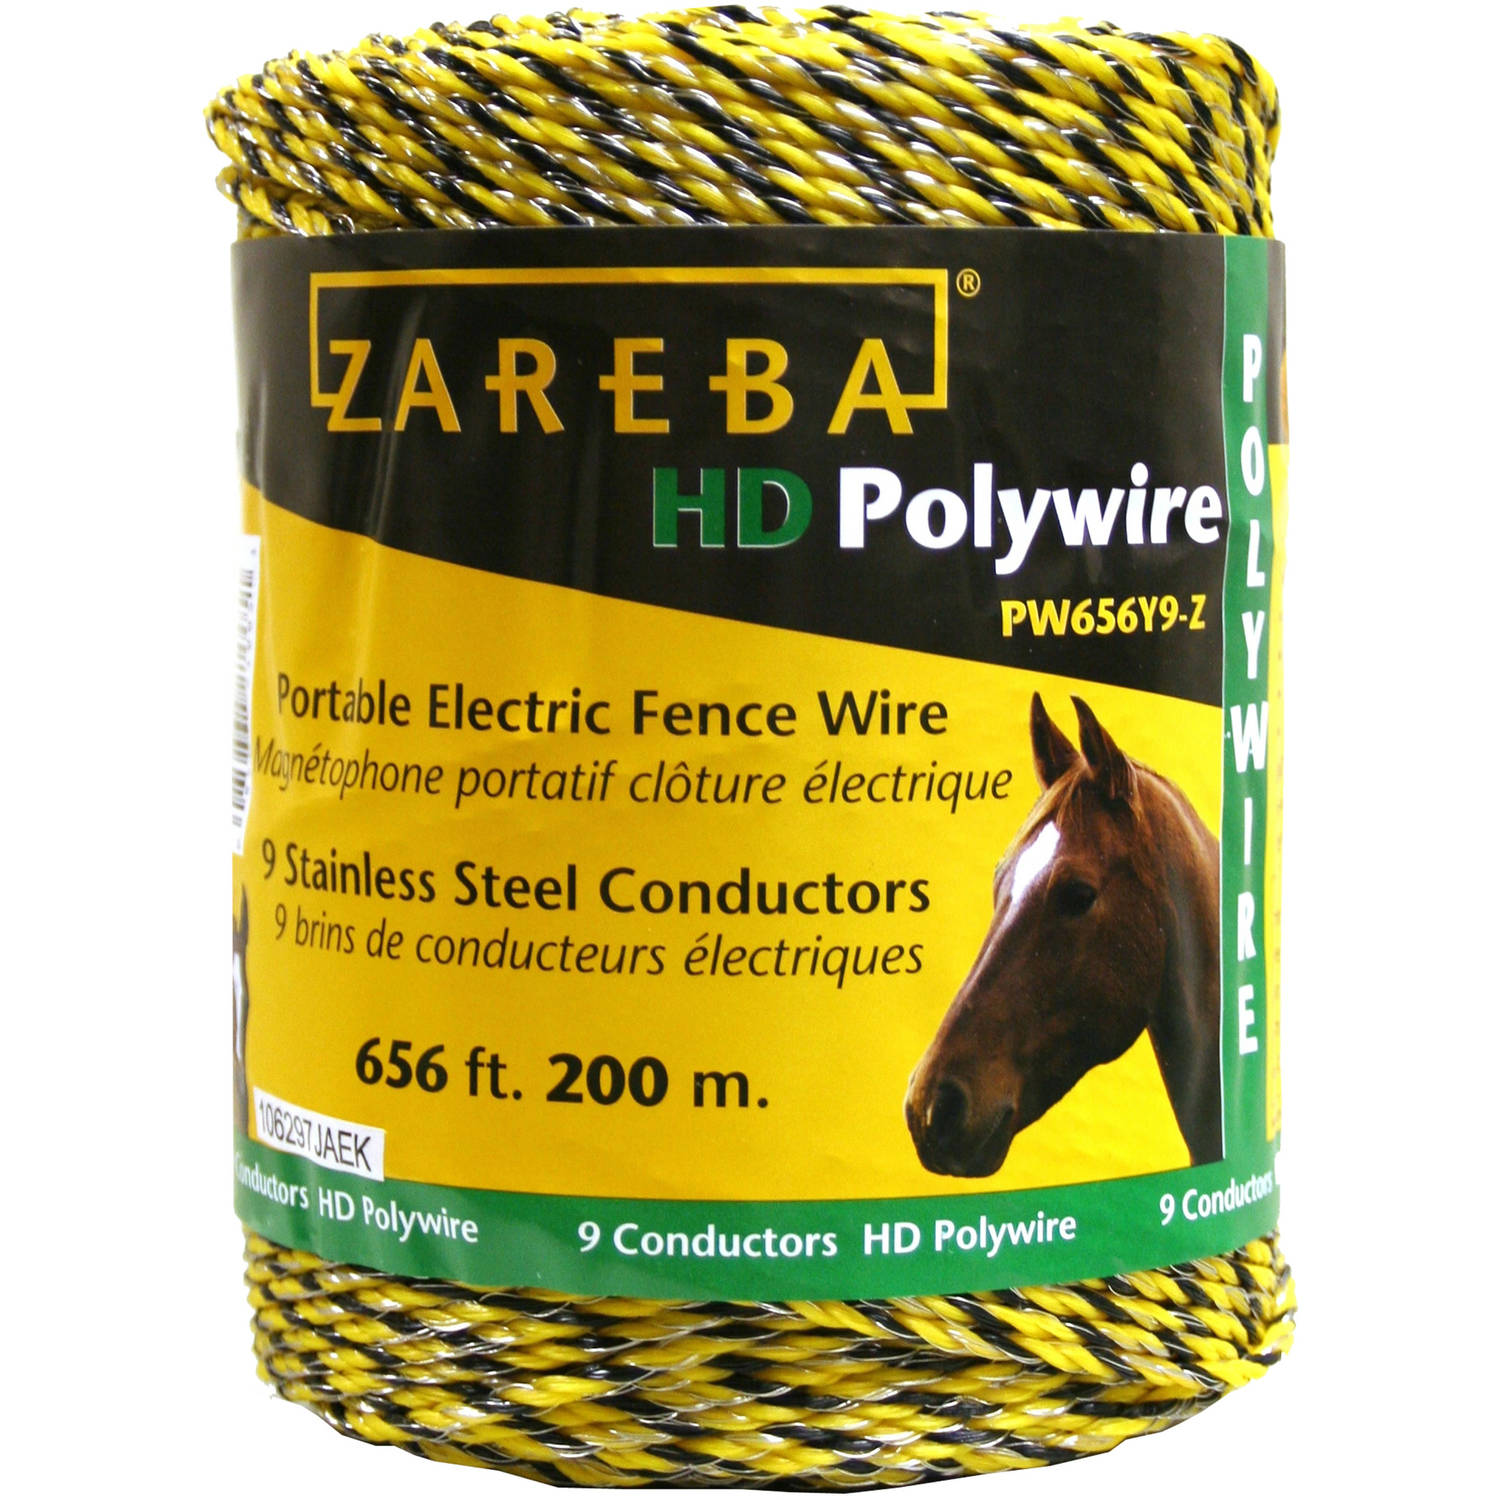 Zareba 200-Meter 9-Conductor Portable Electric-Fence Polywire